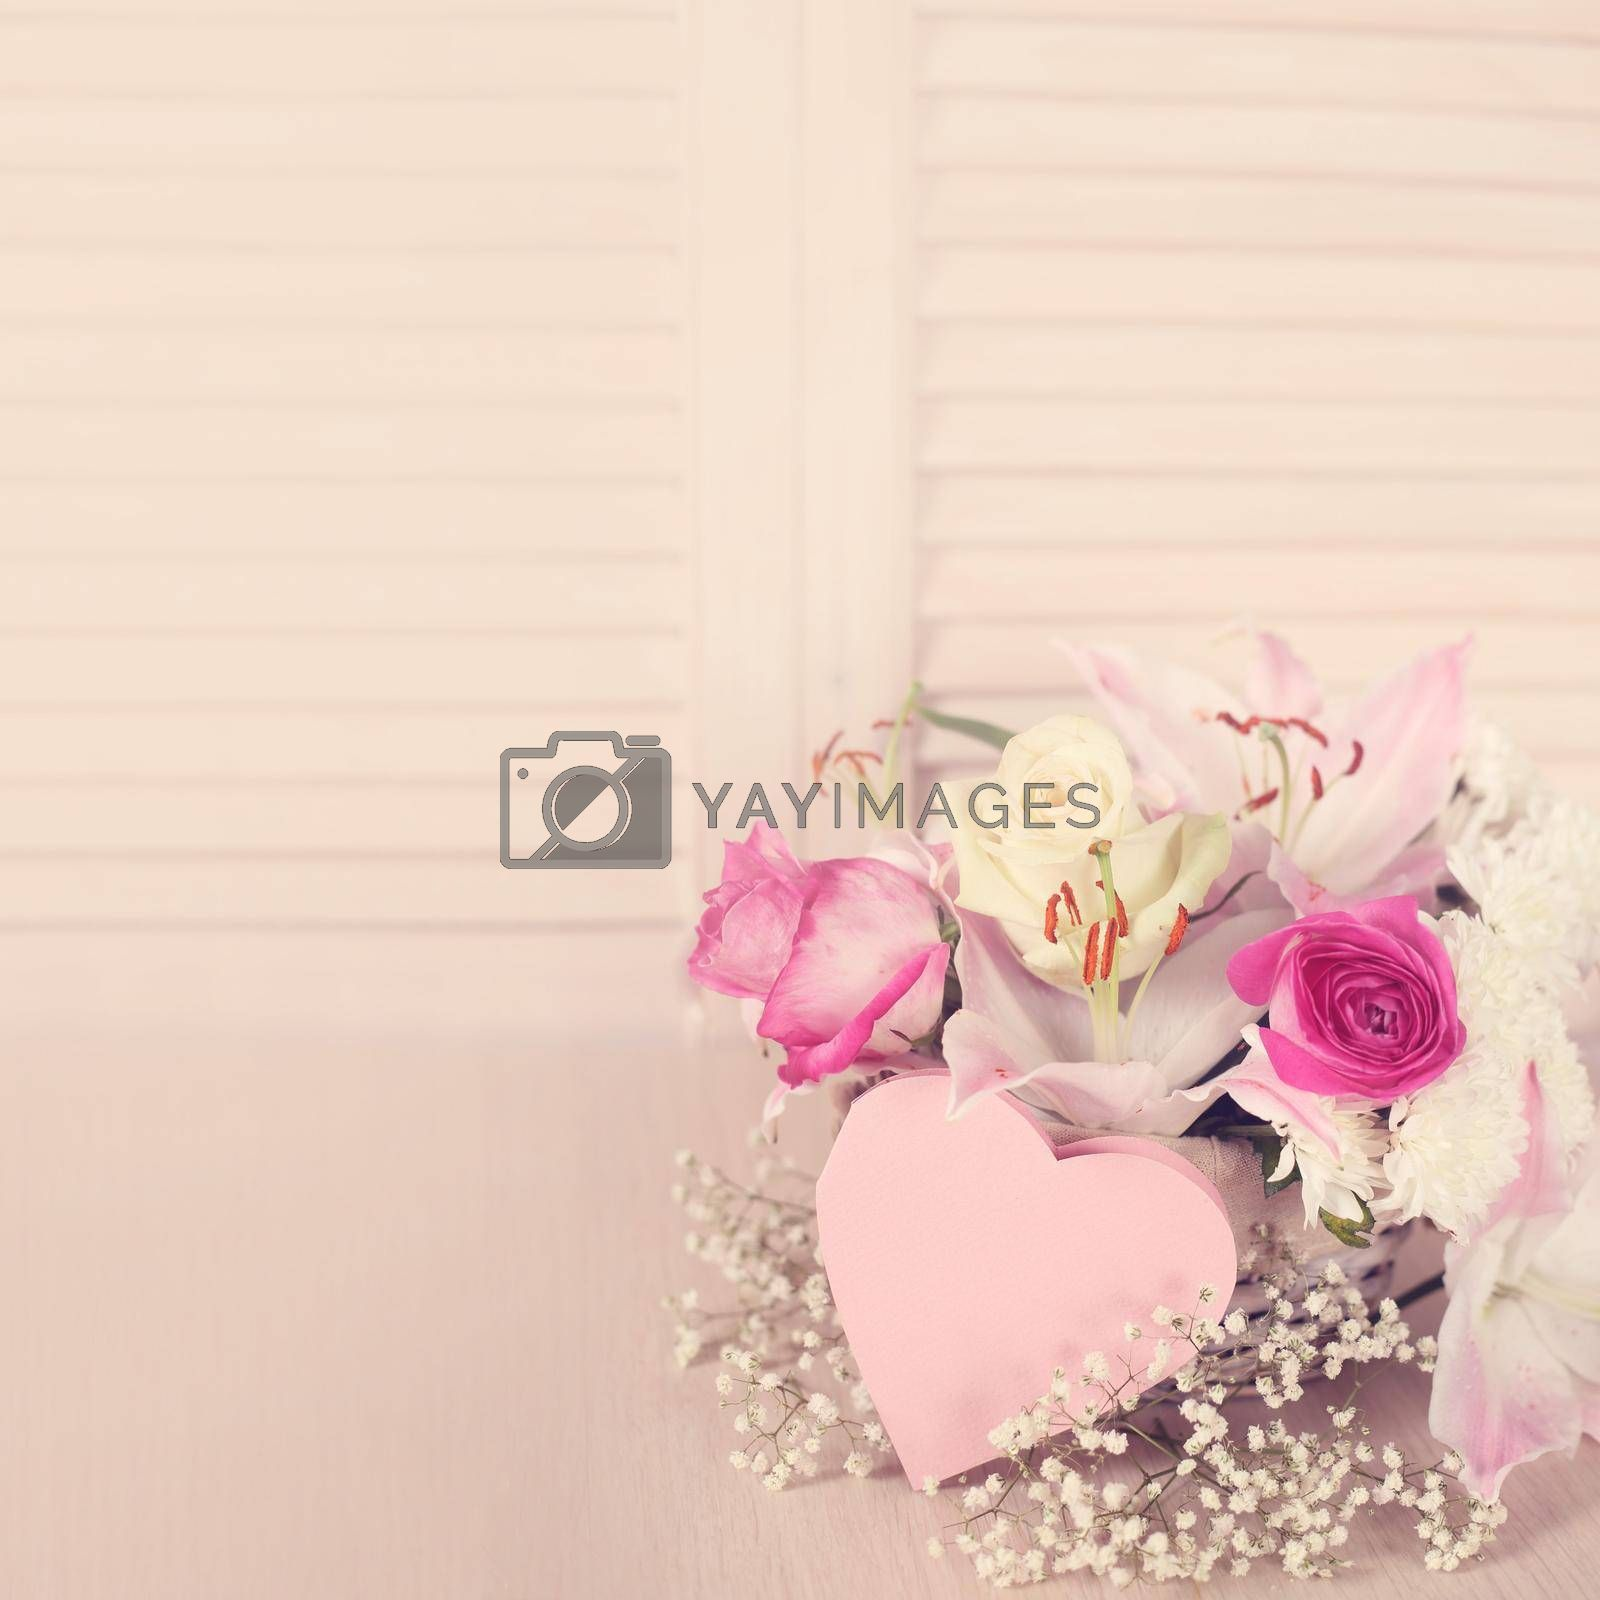 Valentines day flowers in basket and heart shape card